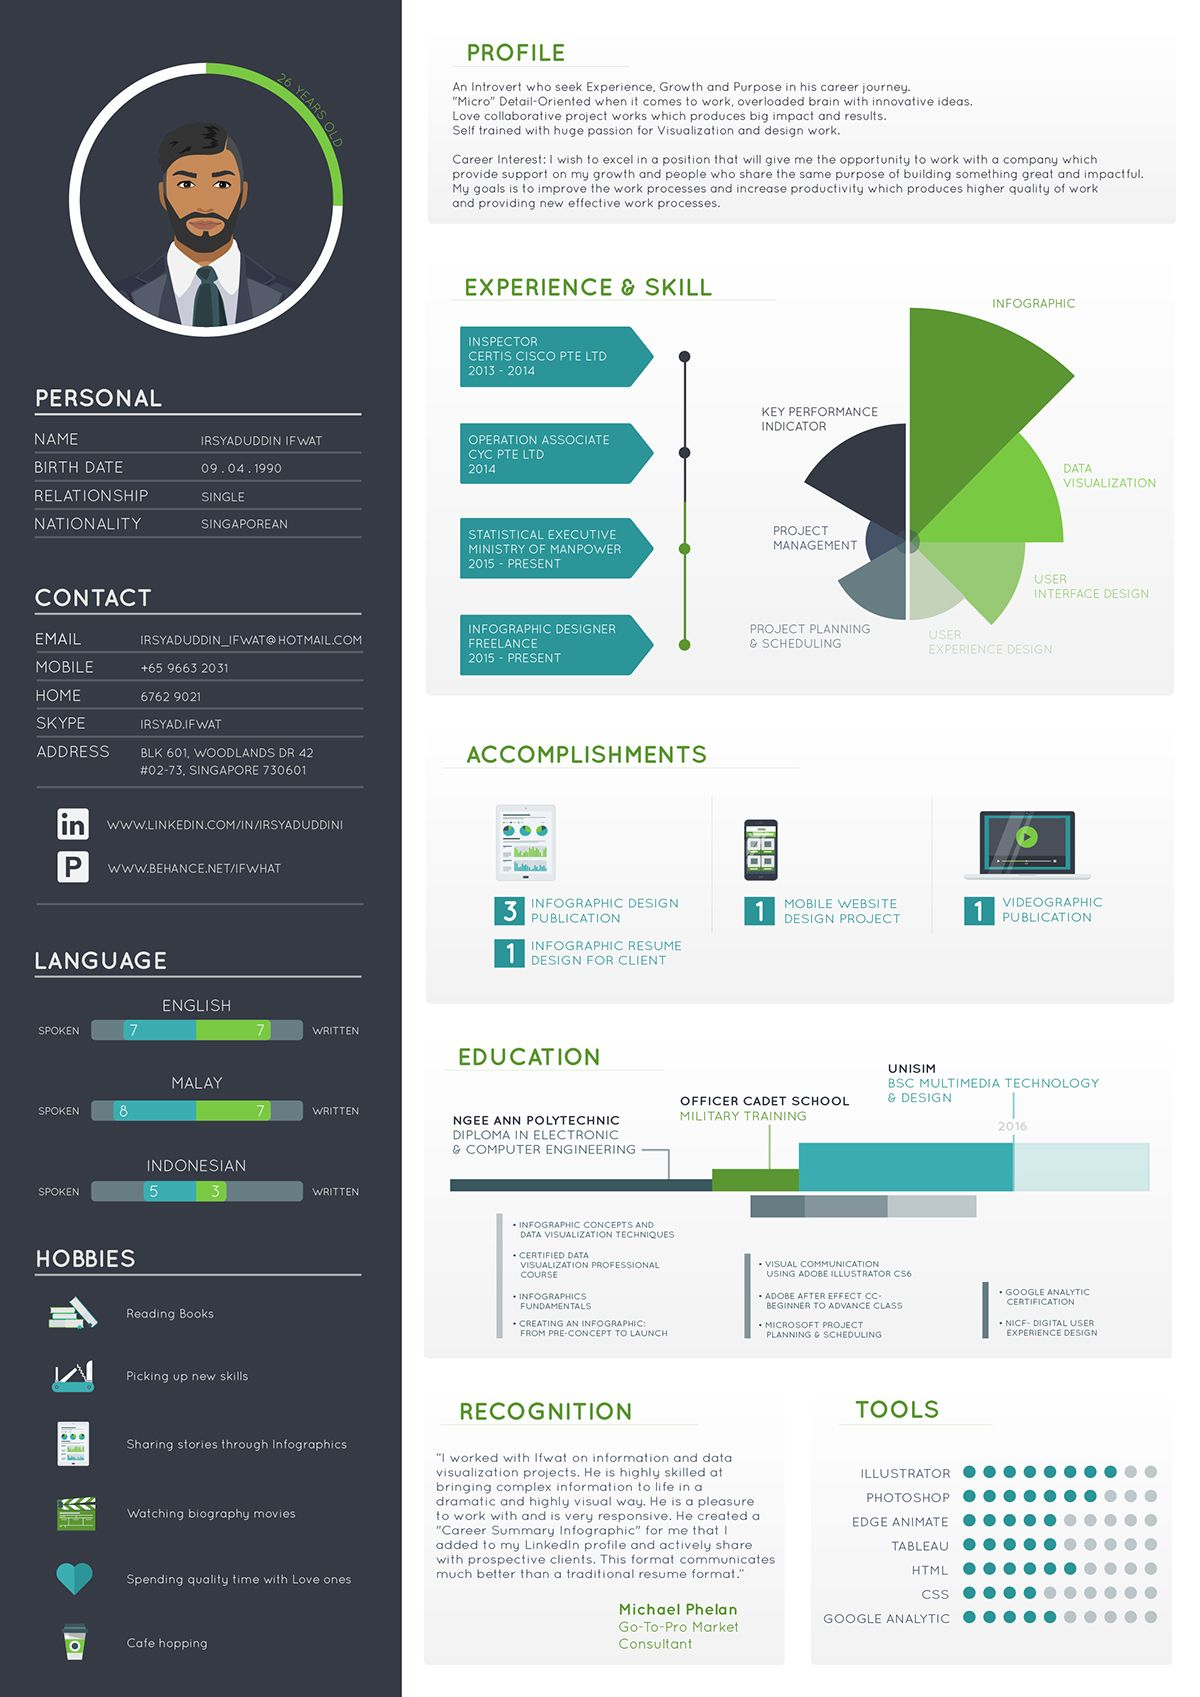 Infographic Resumes Irsyaduddin Ifwat Resume 2016 On Behance Infographic